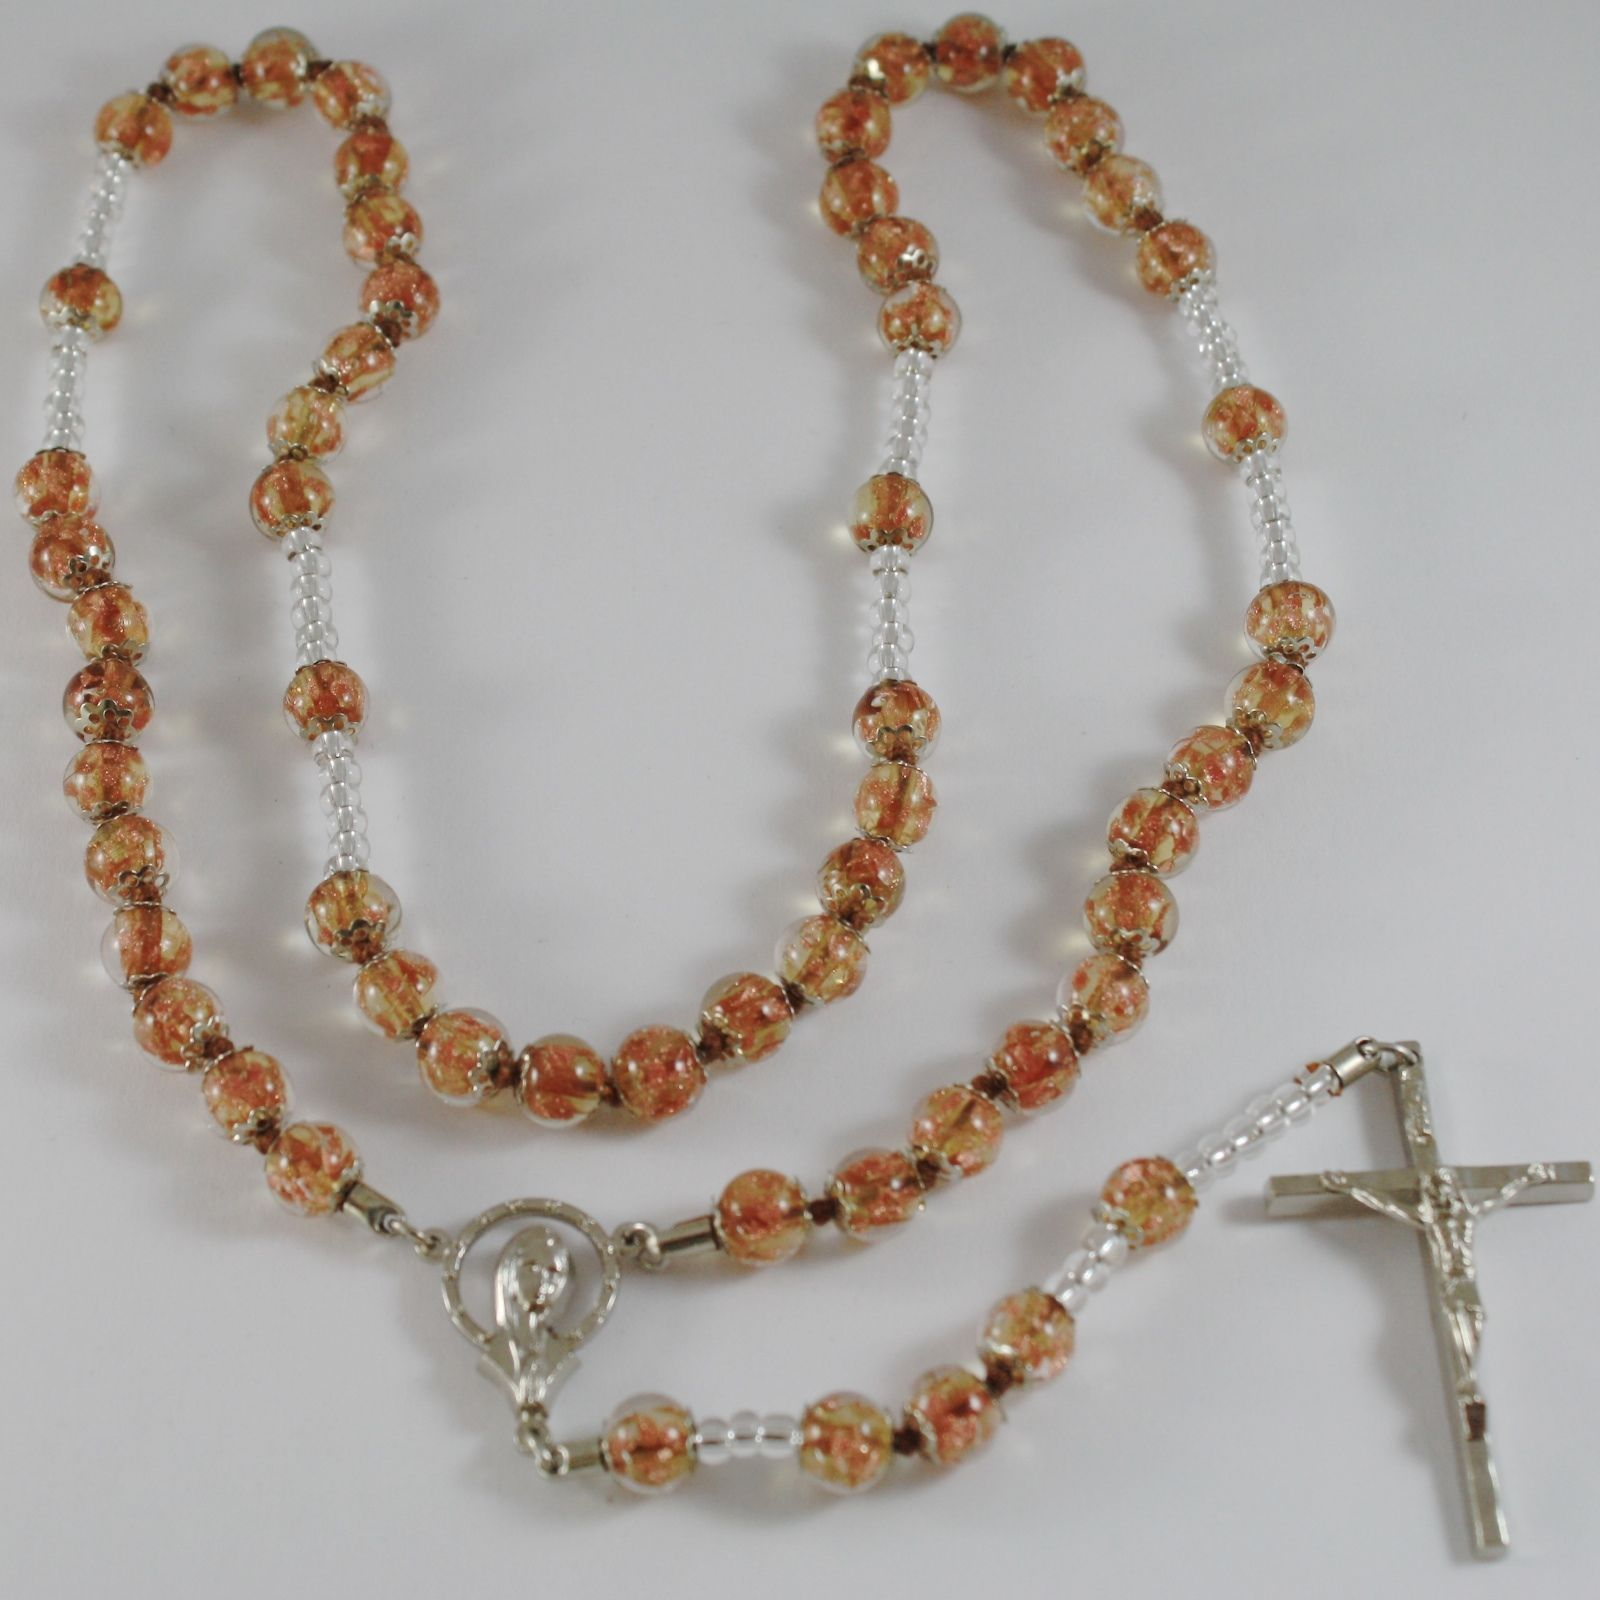 ANTICA MURRINA VENEZIA ROSARY NECKLACE, BEIGE VIRGIN MARY JESUS CROSS 27.5 INCH.